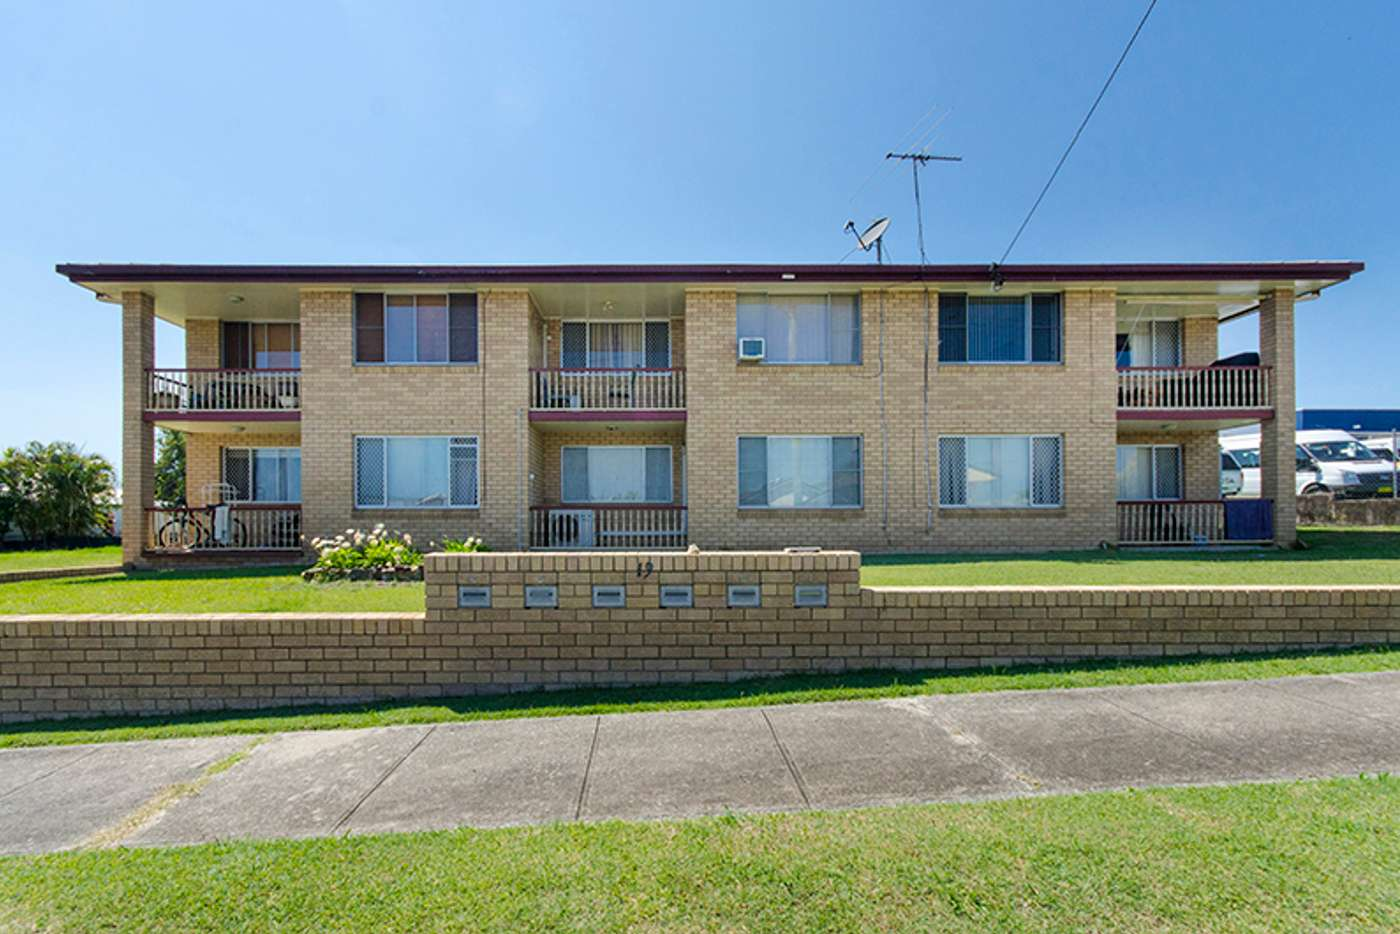 Main view of Homely unit listing, 4/19 FEDERATION STREET, South Grafton NSW 2460